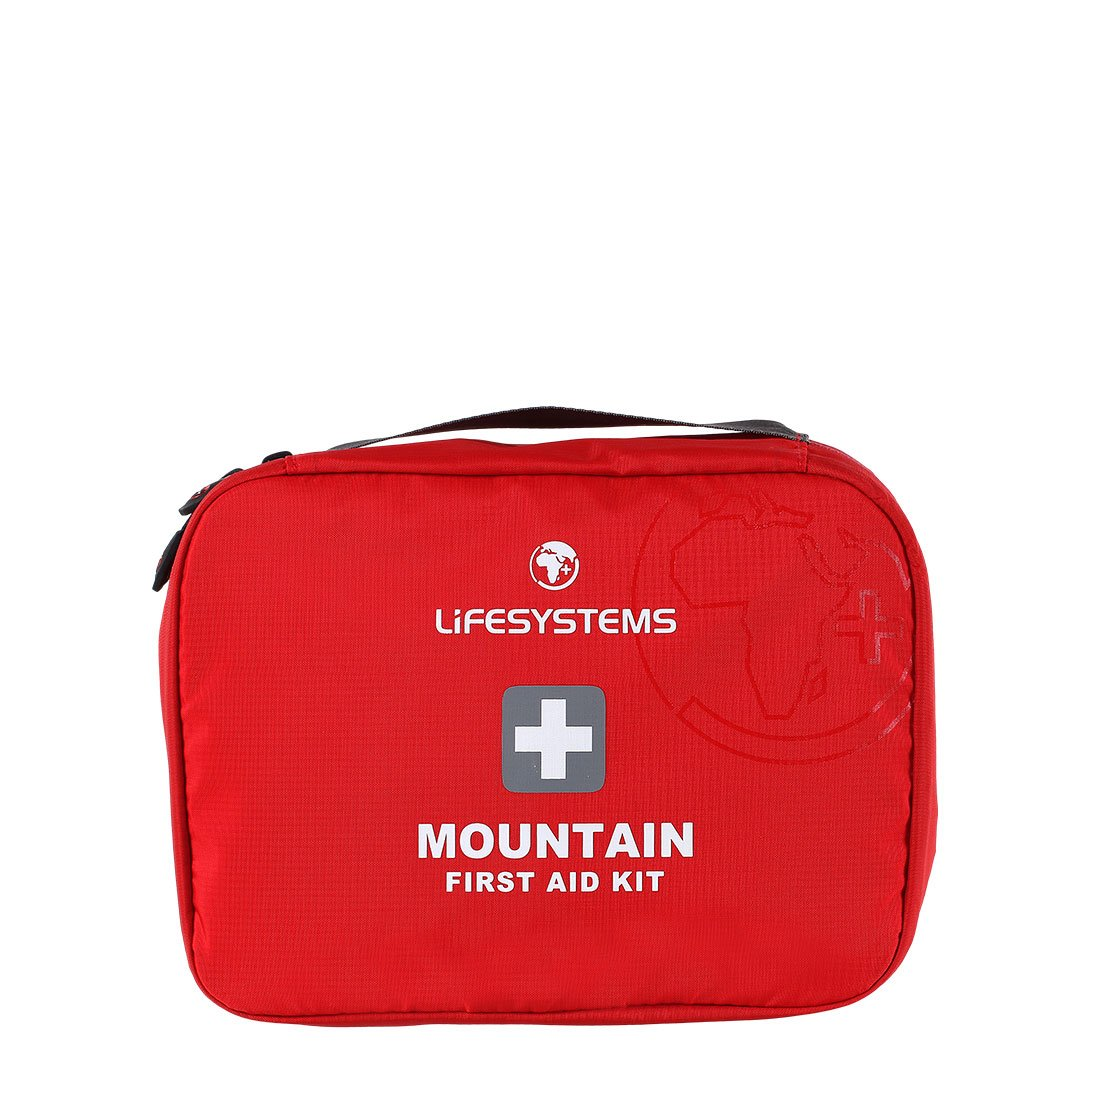 My favorite travel accessories, first aid